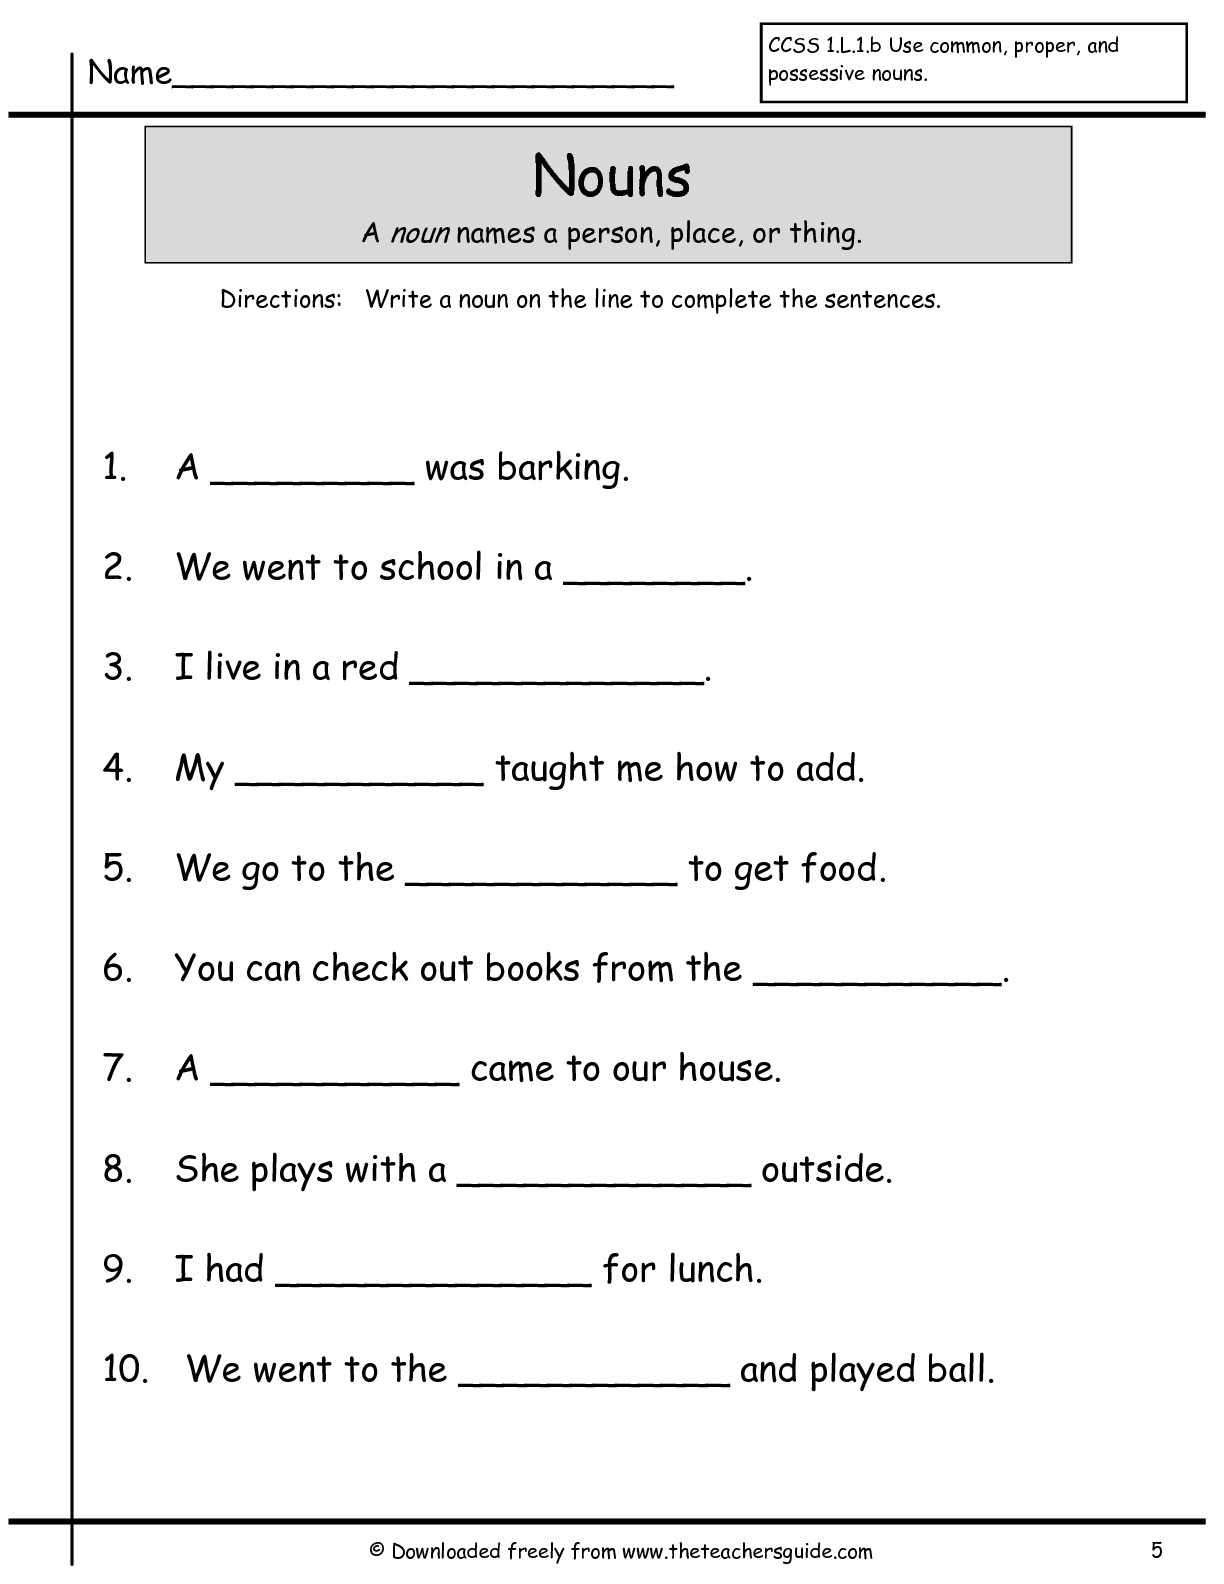 Uncategorized Second Grade Phonics Worksheets reading comprehension worksheets free printable 1st grade deployday printables gozoneguide